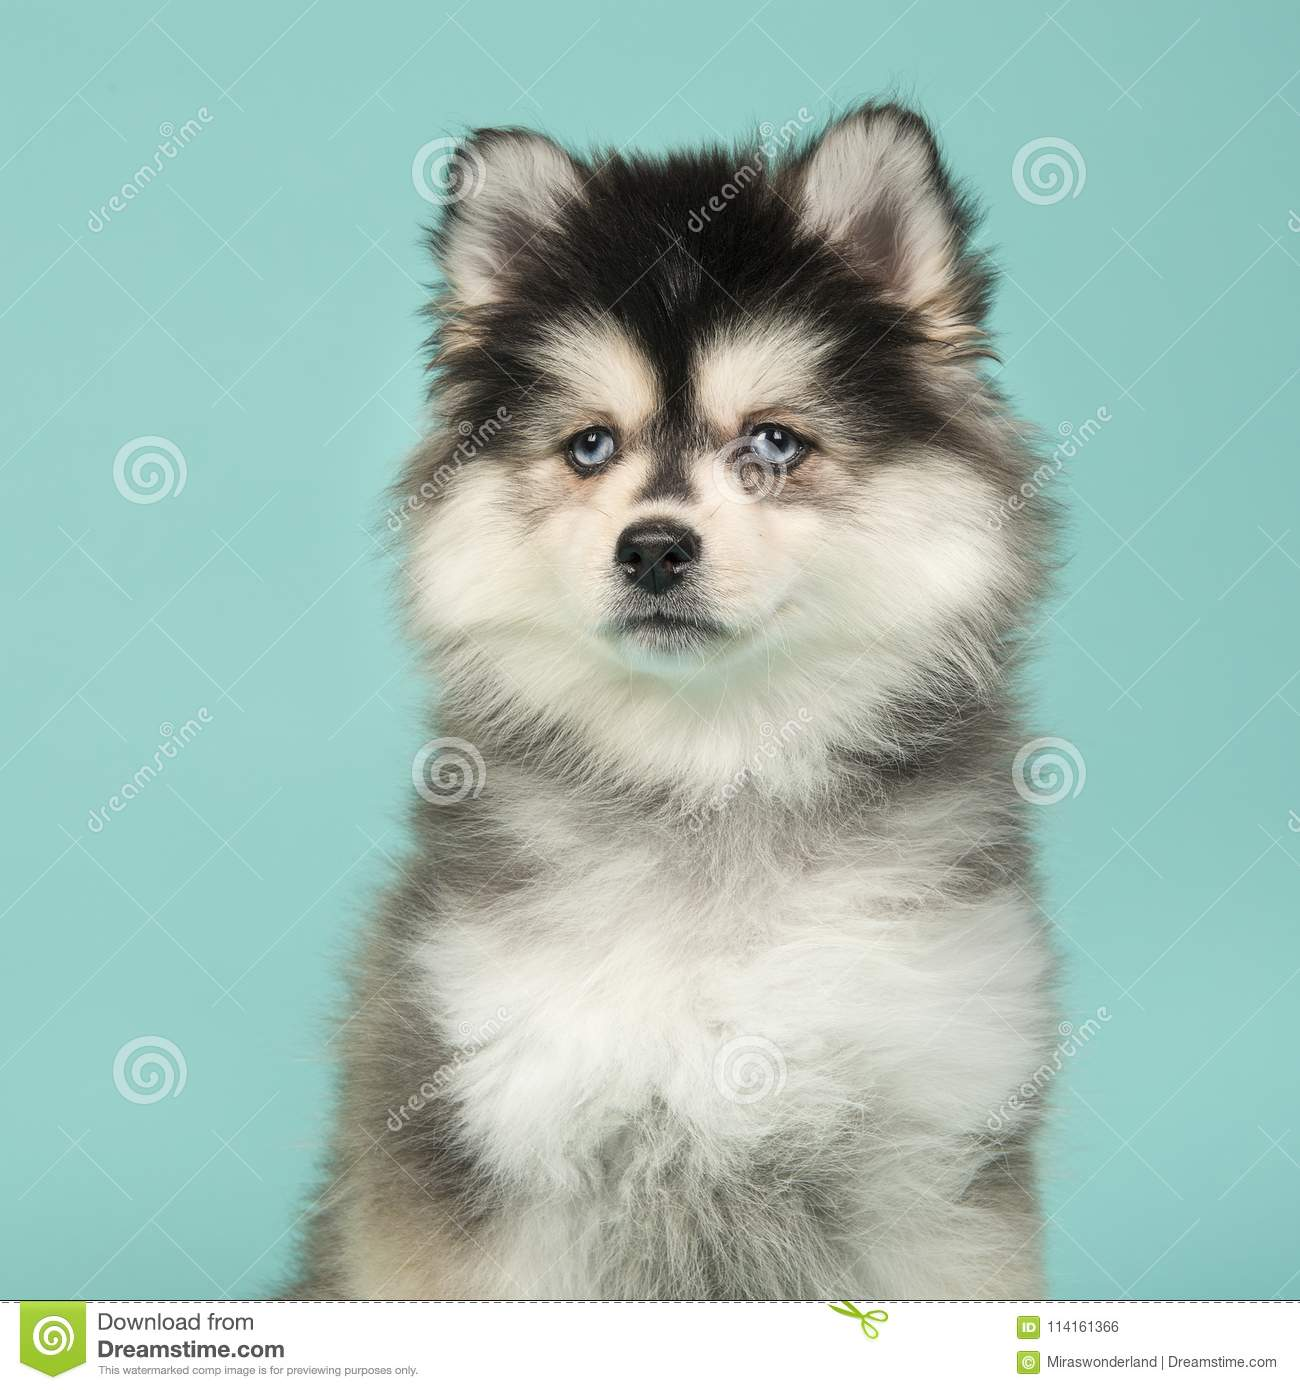 Portrait of a mini husky puppy with blue eyes glancing away on a